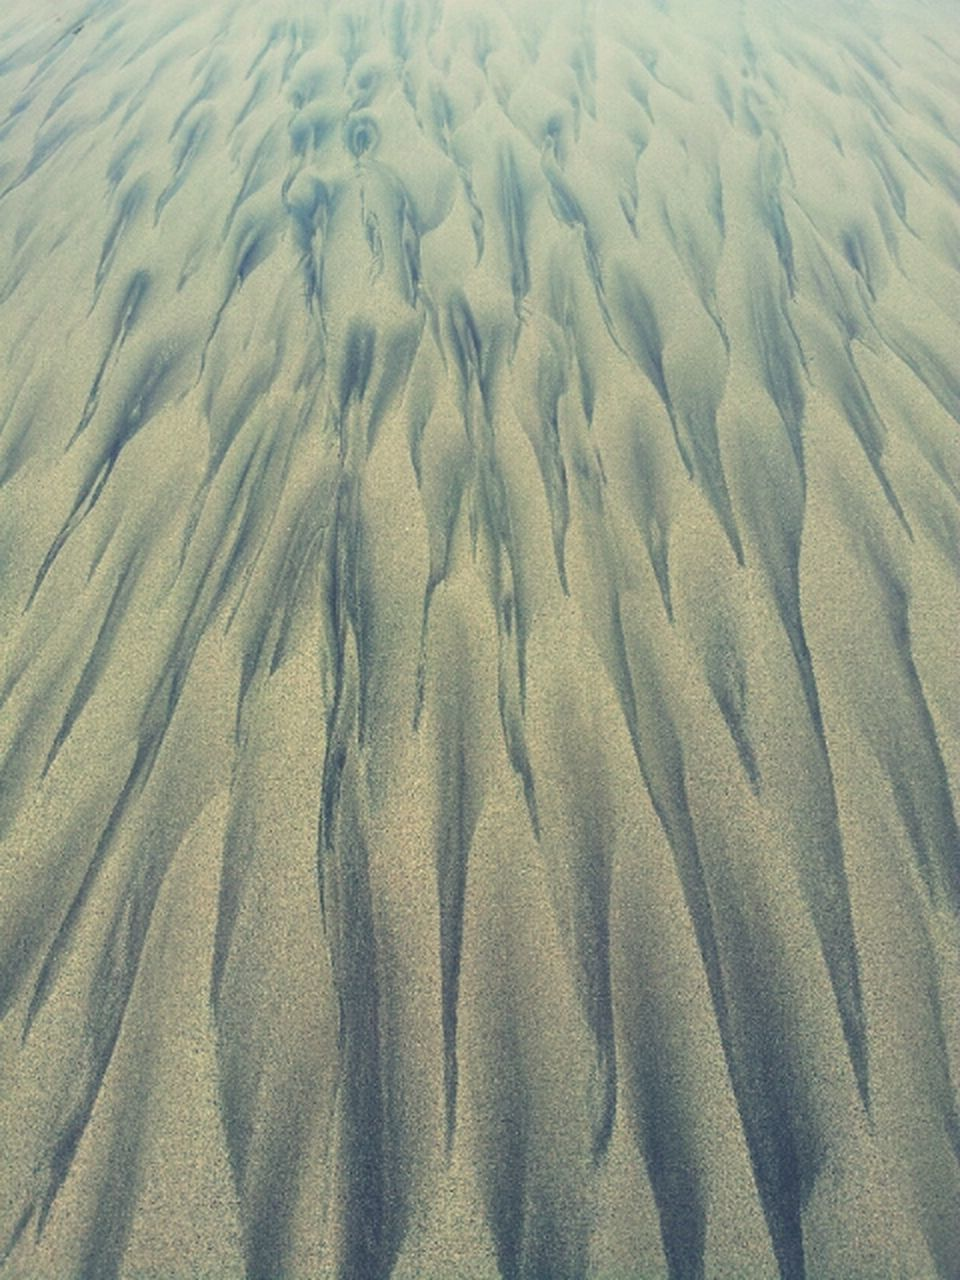 sand, backgrounds, full frame, pattern, nature, sand dune, day, no people, outdoors, beauty in nature